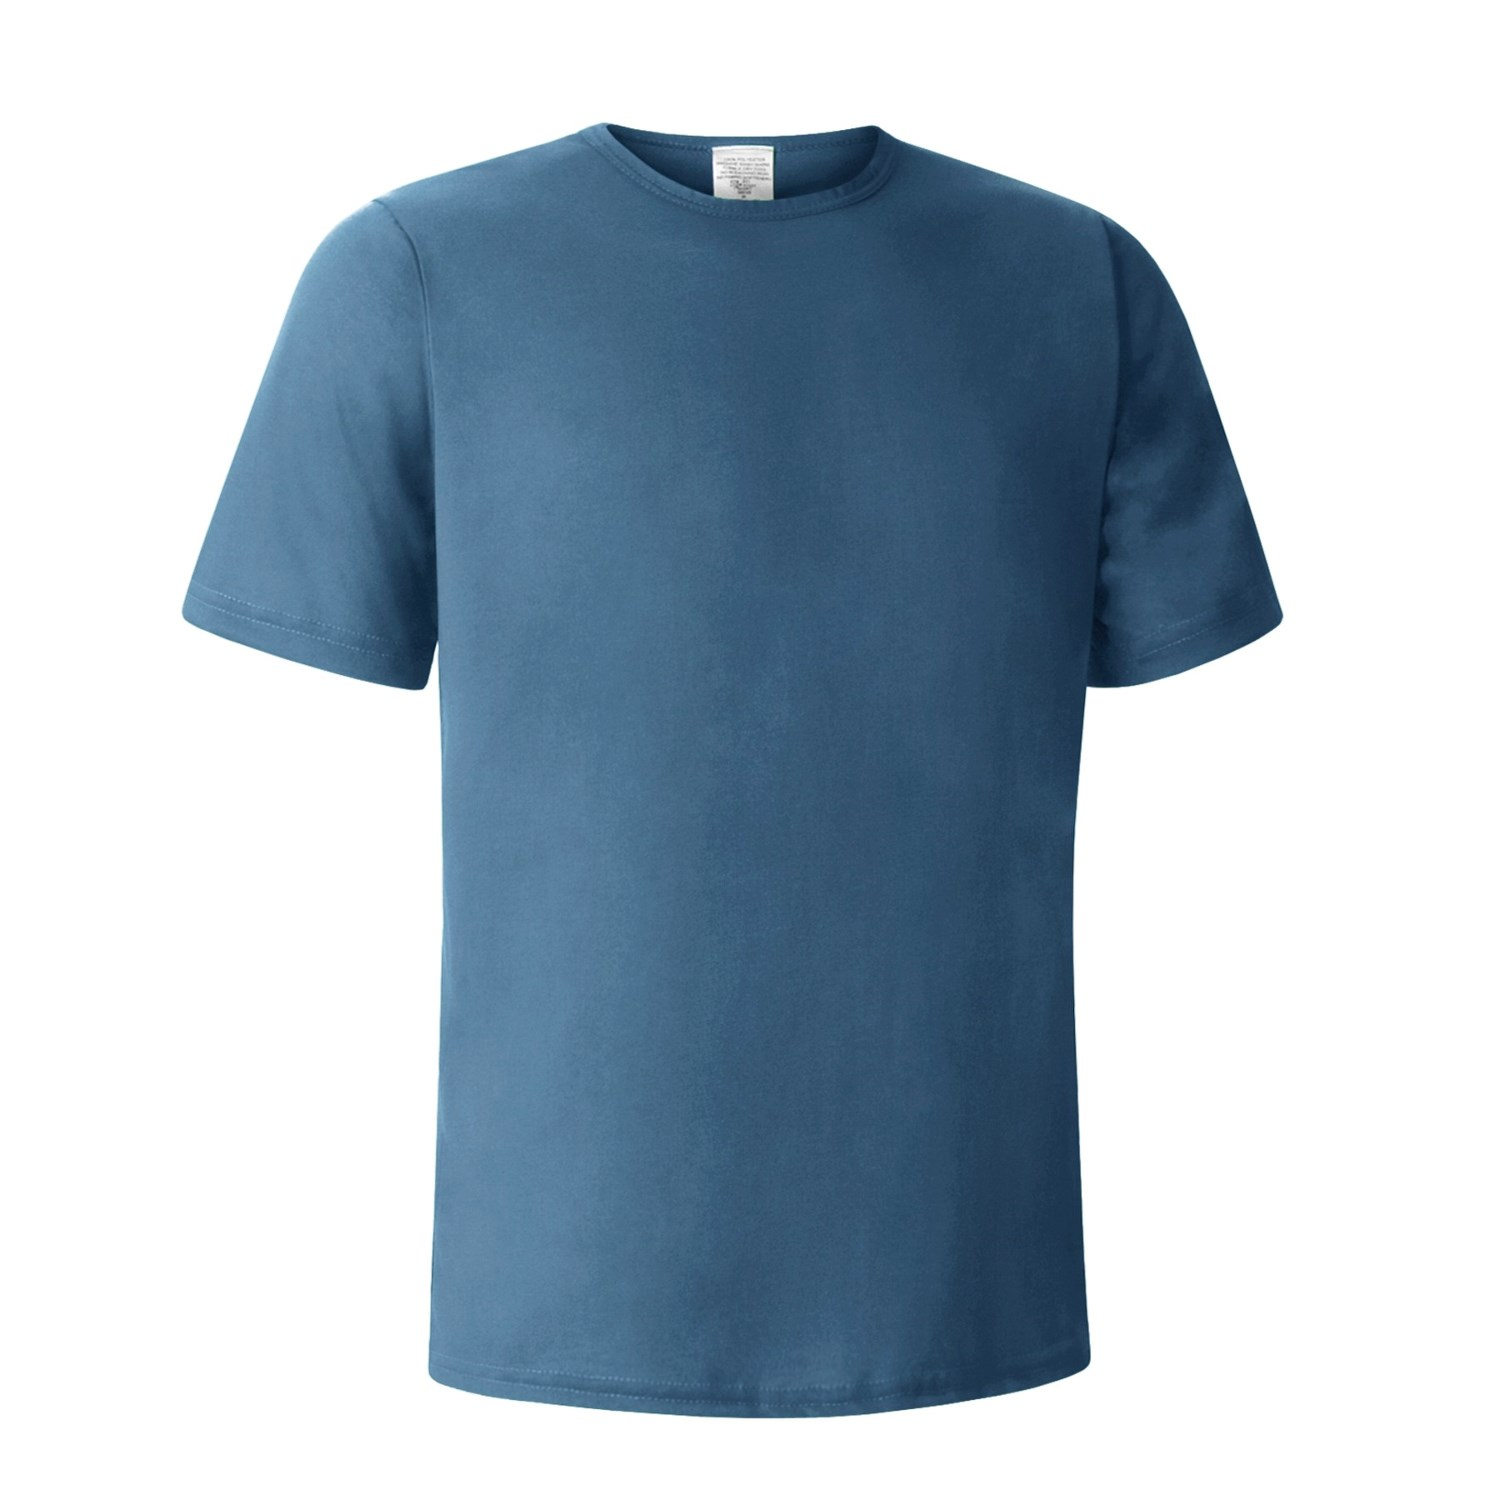 Wickers moisture wicking t shirt for men 15211 save 52 for Moisture wicking dress shirts